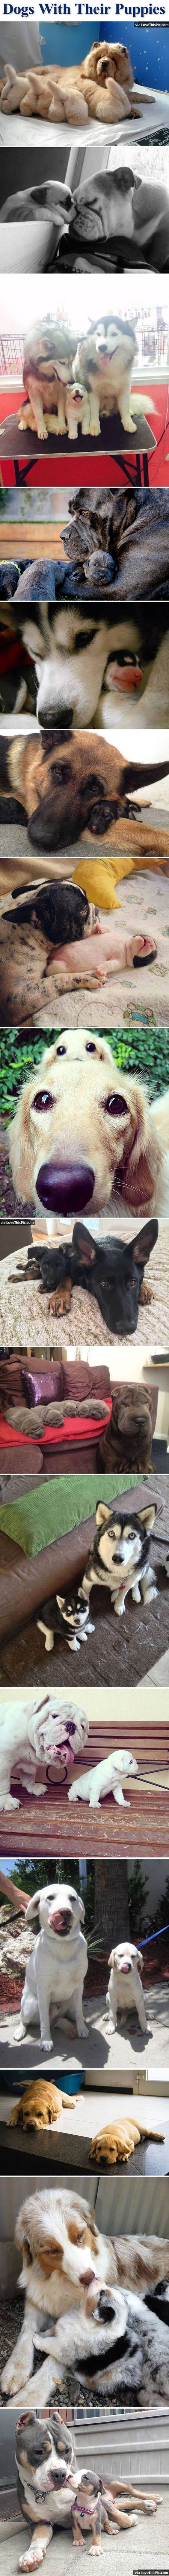 Dogs With Their Puppies - oh my!: